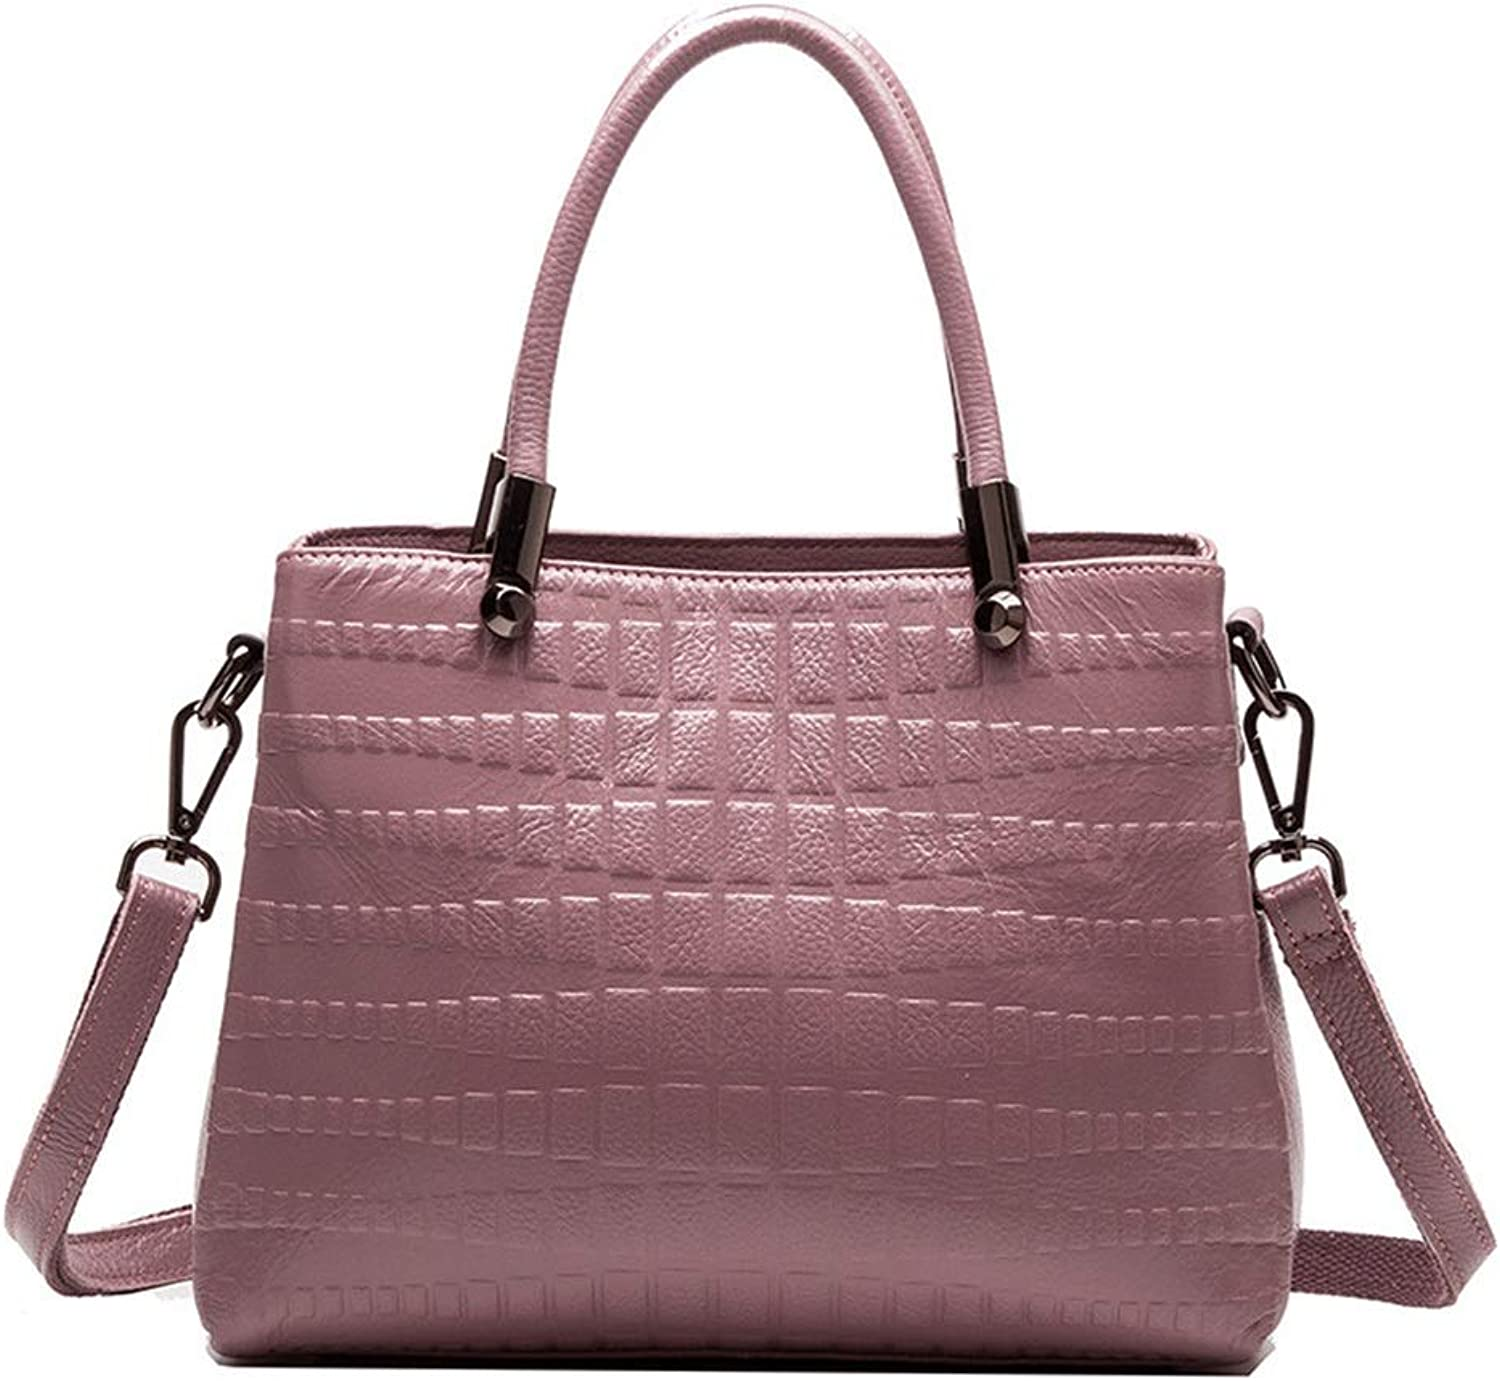 Sturdy Leather Ladies Handbags Crocodile Pattern Leather Shoulder Diagonal Package LargeCapacity Shopping Bags Large Capacity (color   Purple)